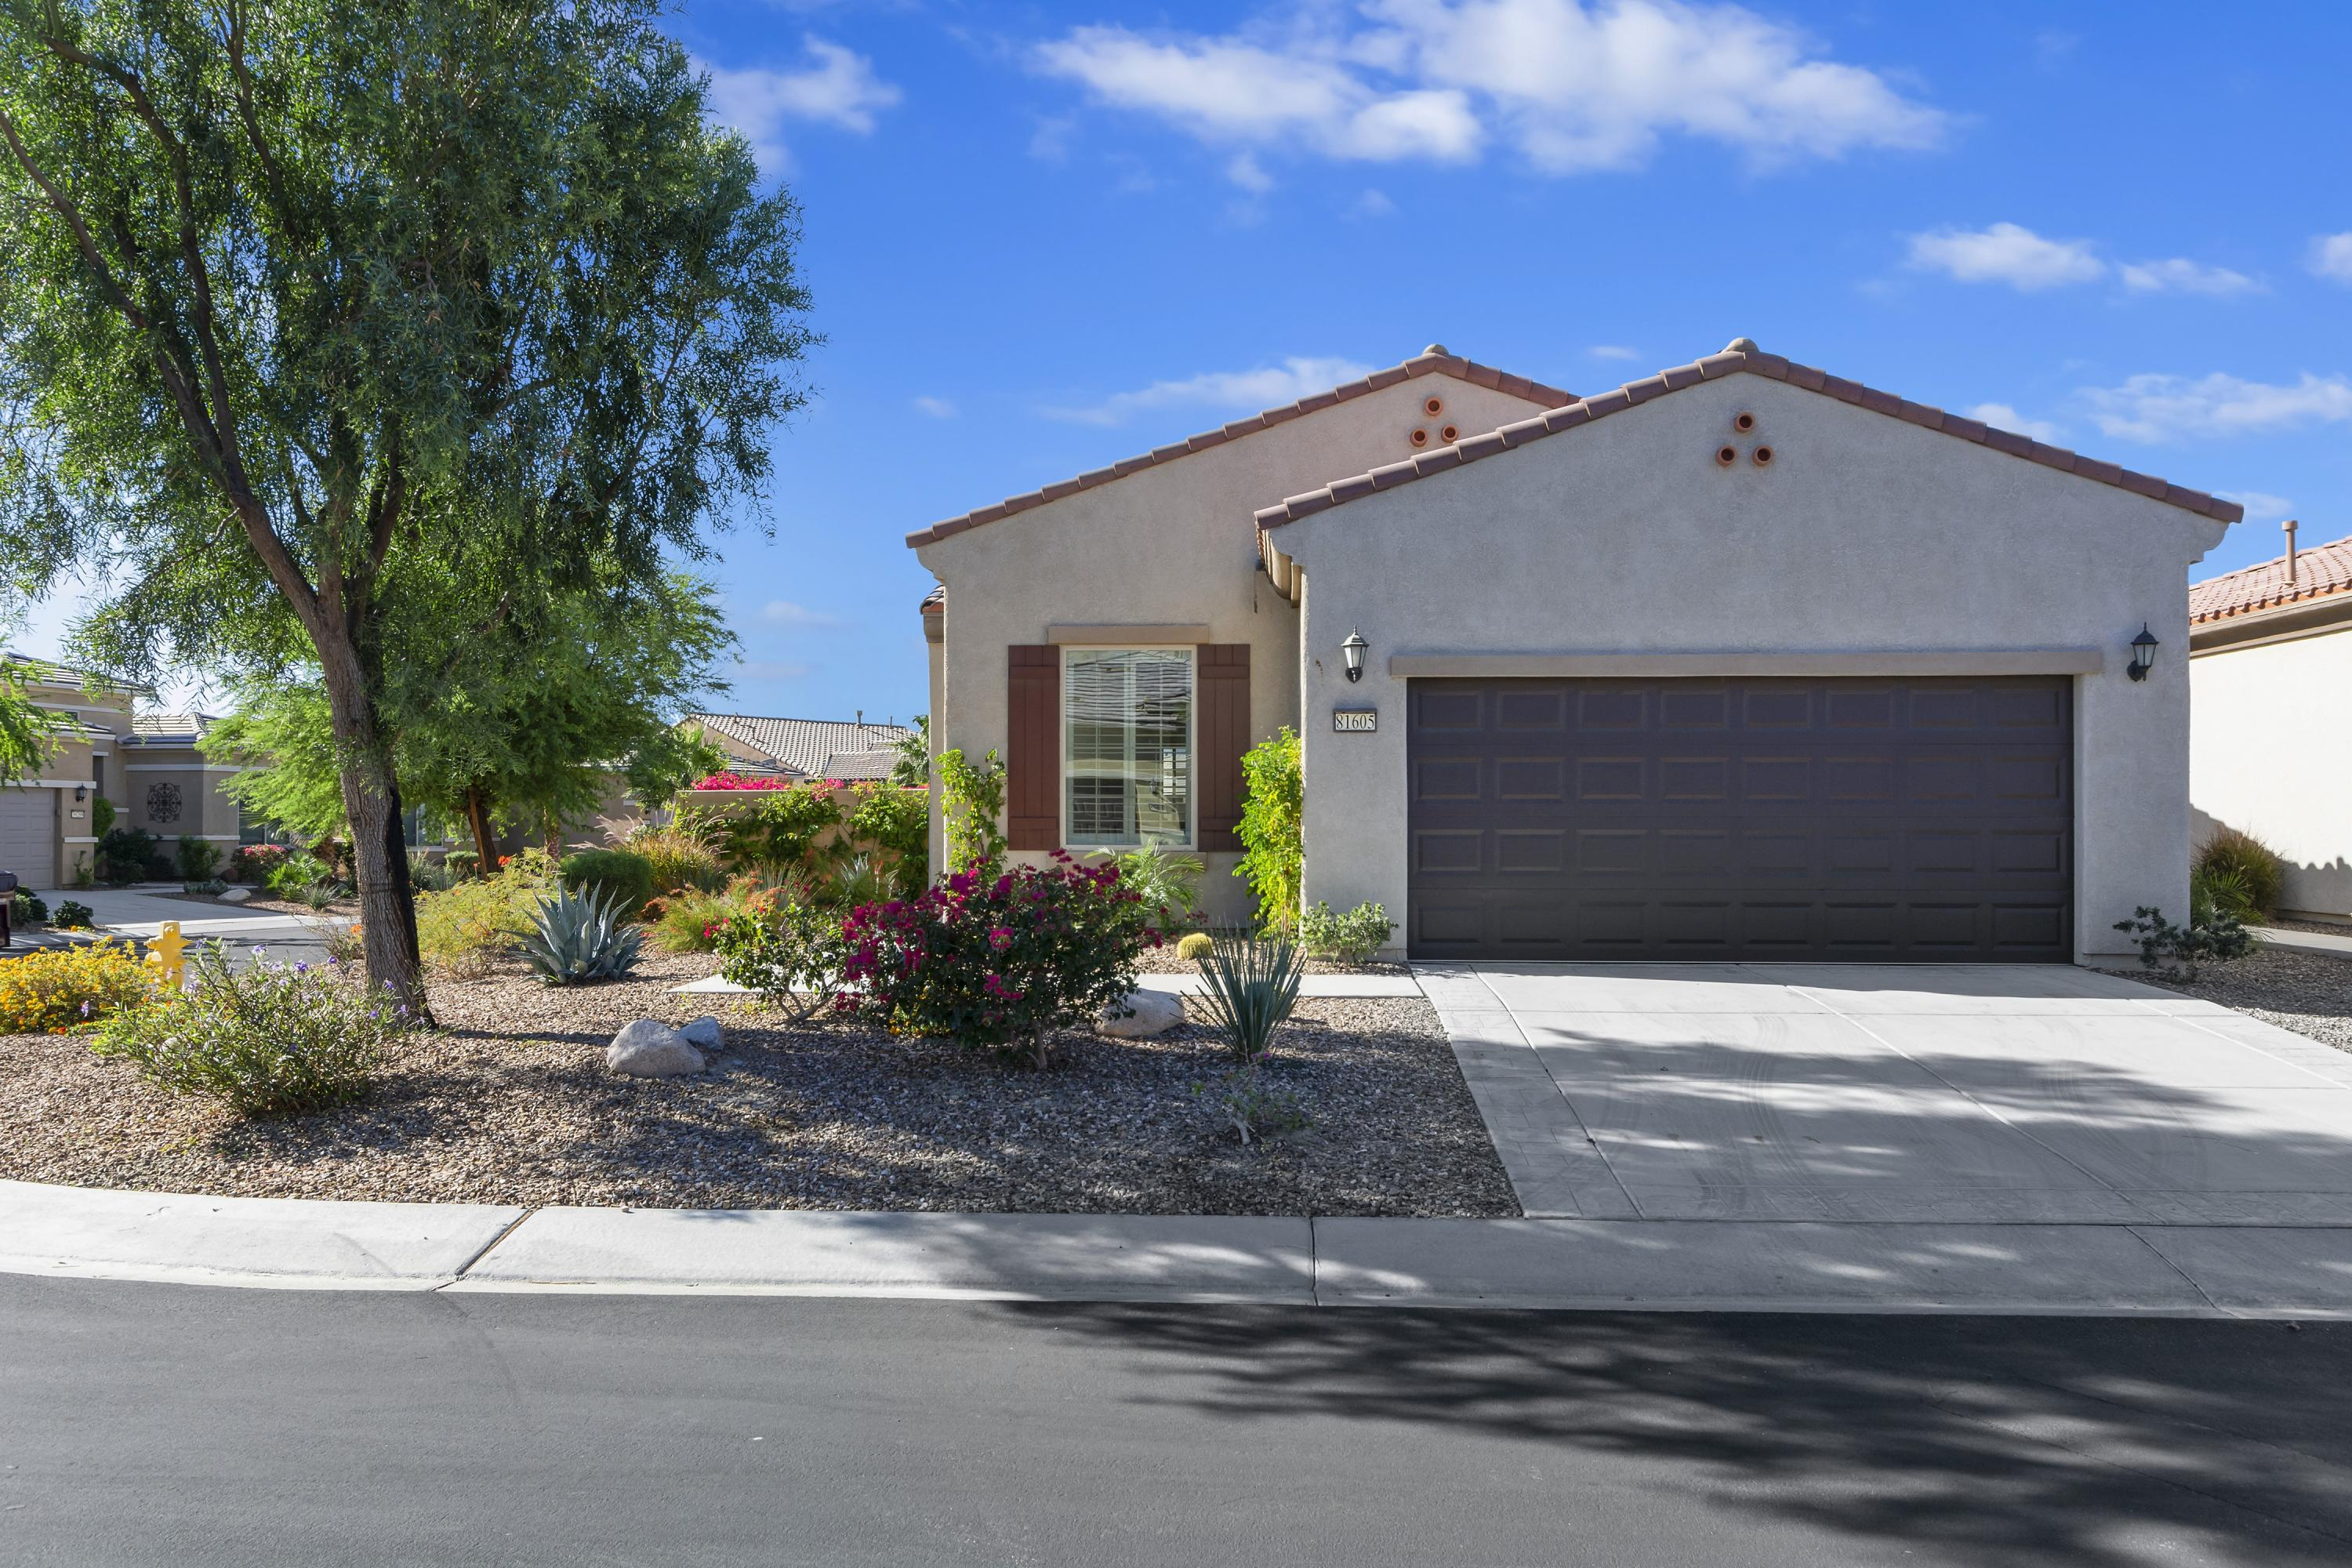 Photo of 81605 Avenida Viesca, Indio, CA 92203